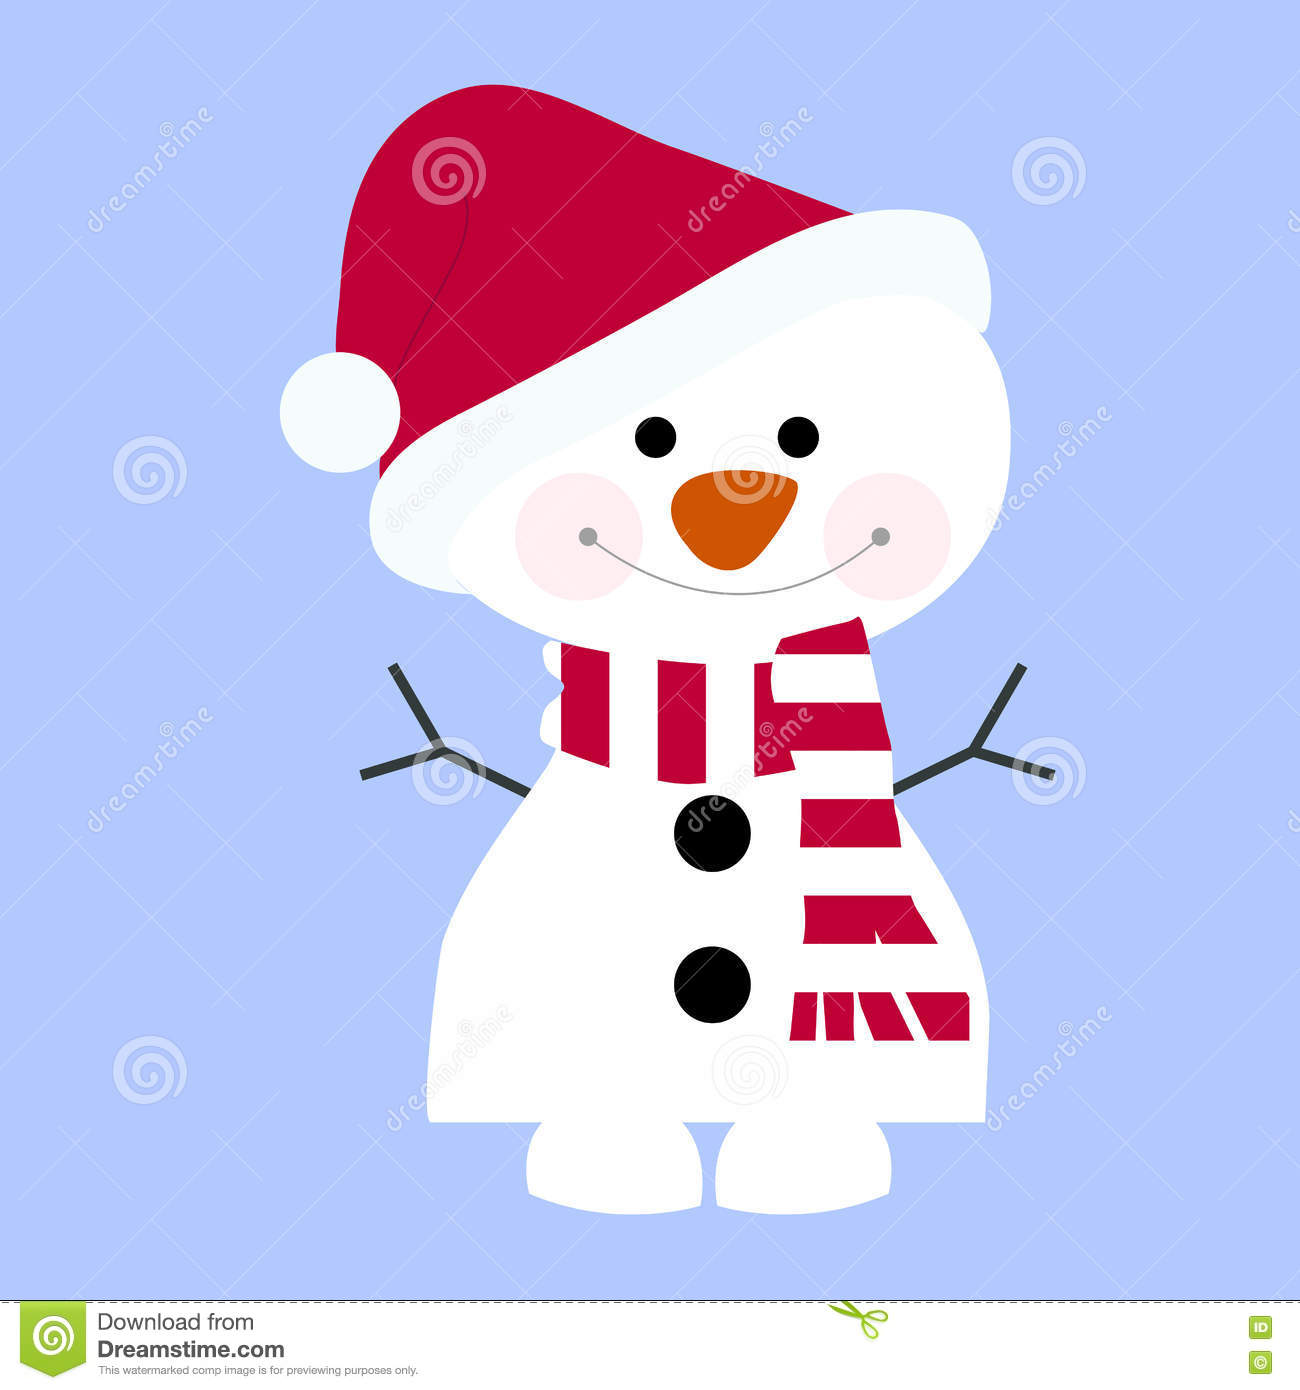 Icon Cute Baby Holiday Christmas Small Snowman Wearing A Scarf